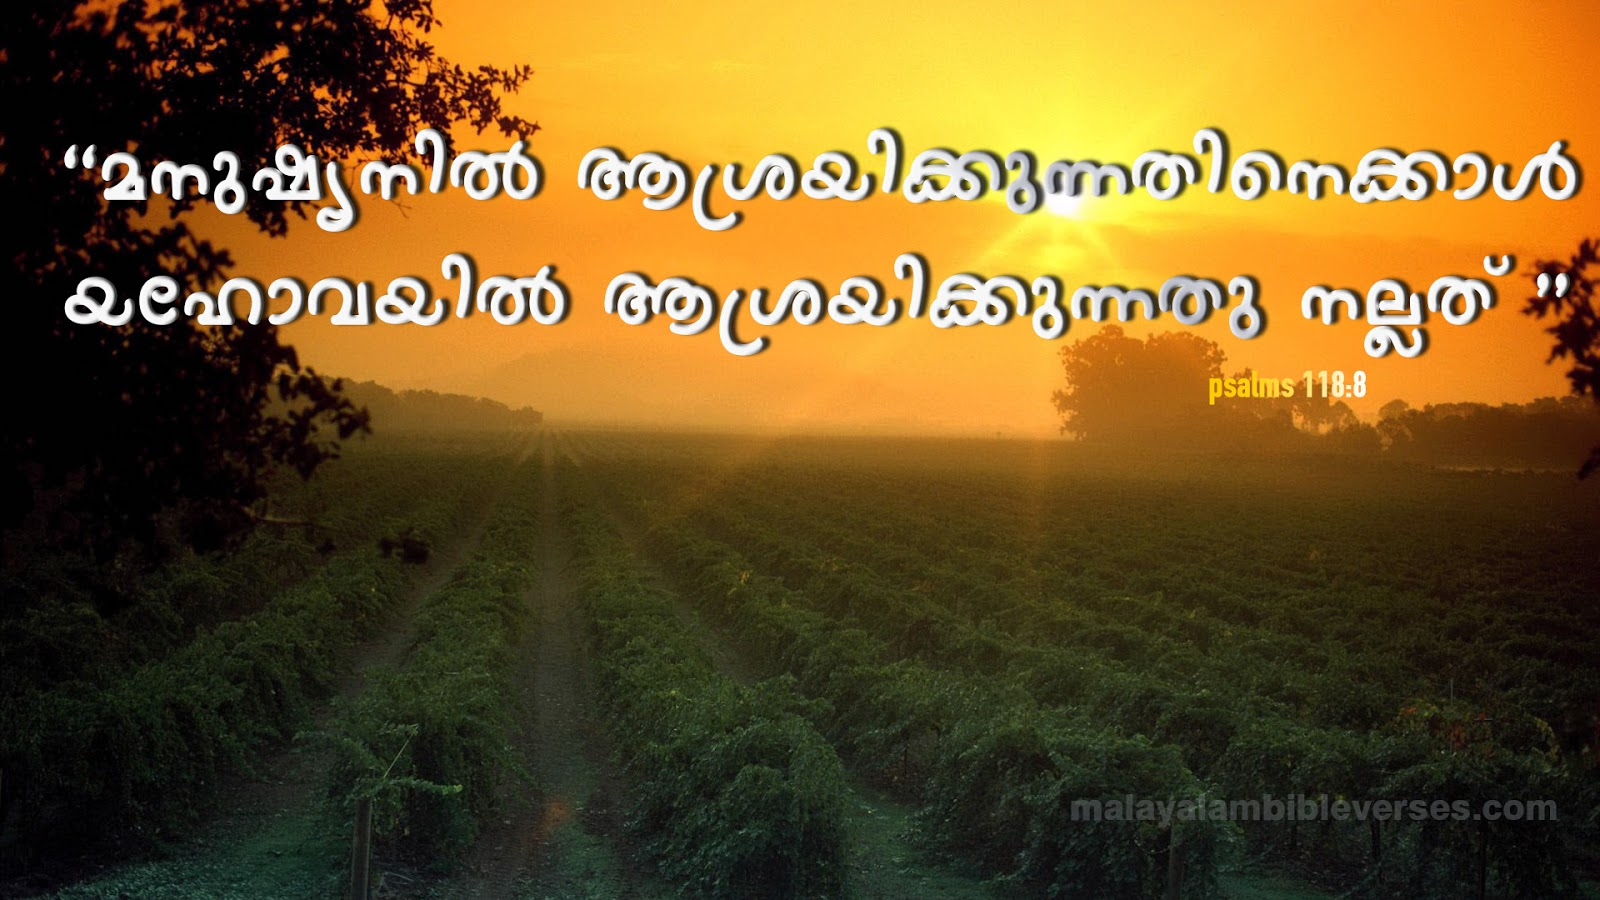 Malayalam Bible Verses Download HD High Quality Malayalam English 3D 1600x900